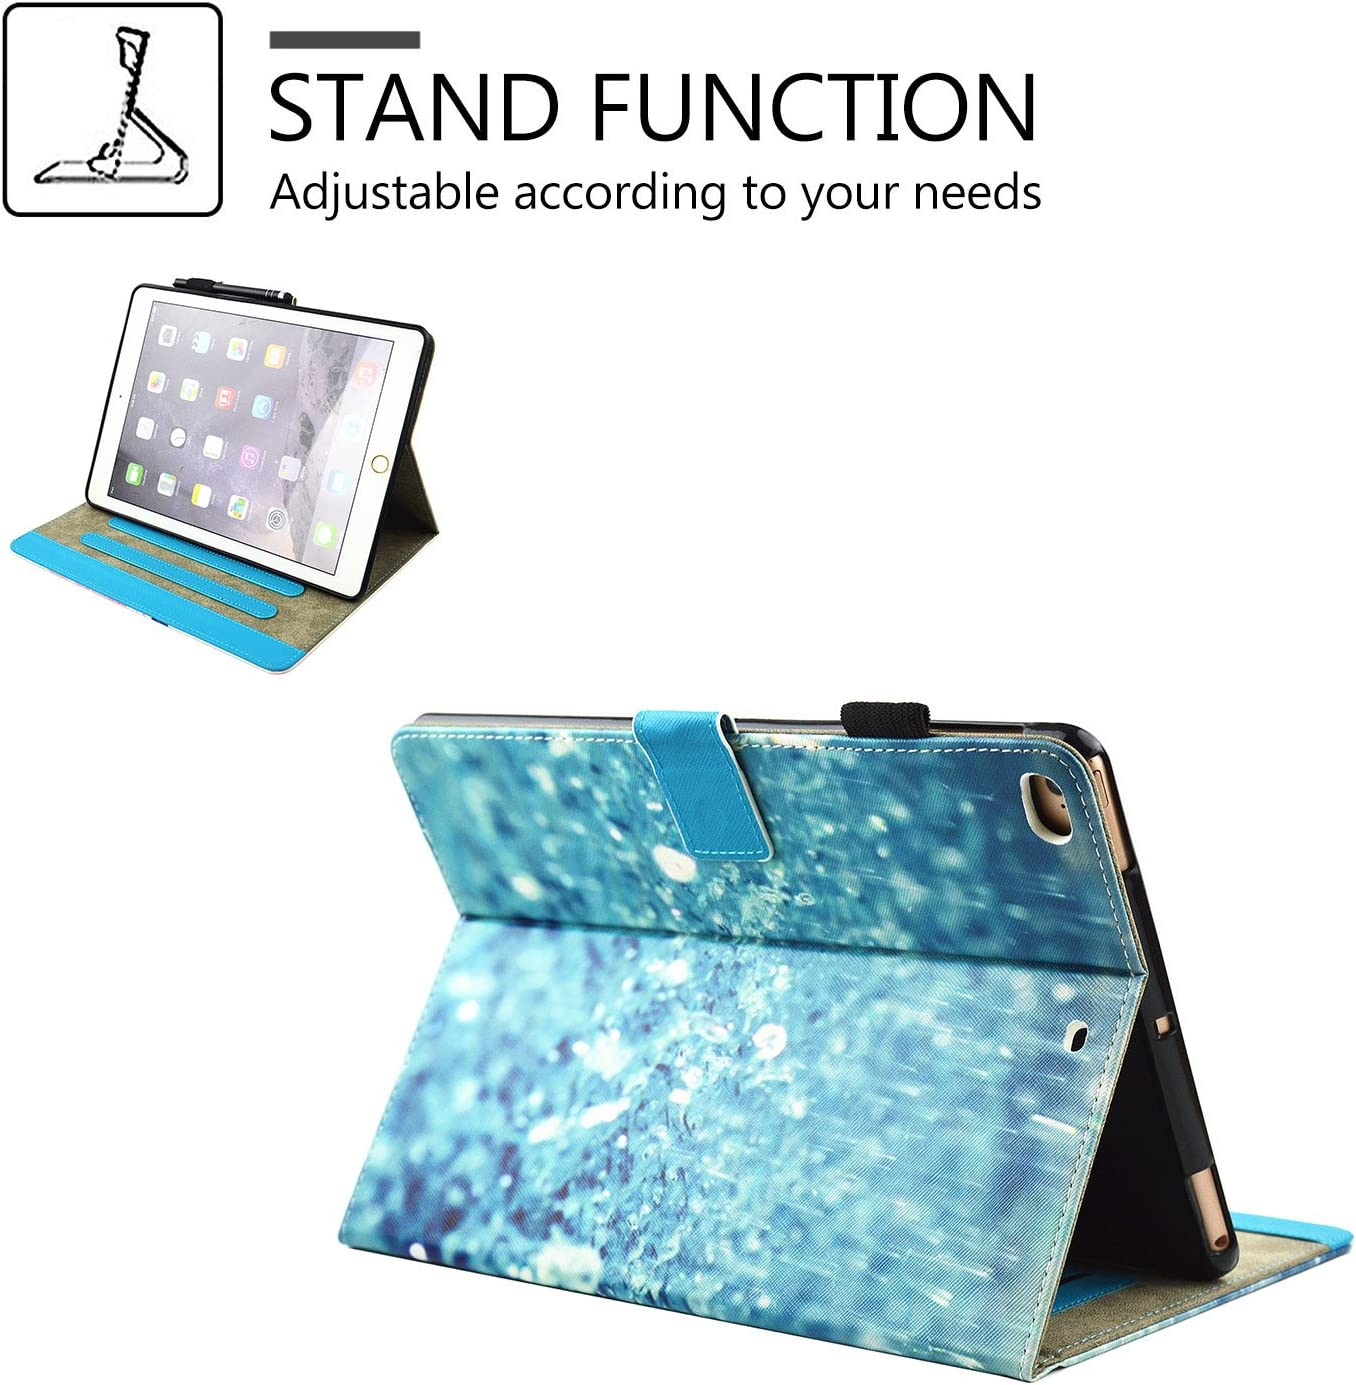 iPad Air 2 //iPad Air//iPad 9.7 2017 Covers Multi-Angle Viewing iPad 5/&6 ,Paris Dream Kickstand Durable Hybrid Leather Cover with PC Inner Protective Case for Apple iPad 9.7 2017//iPad Air 1/&2